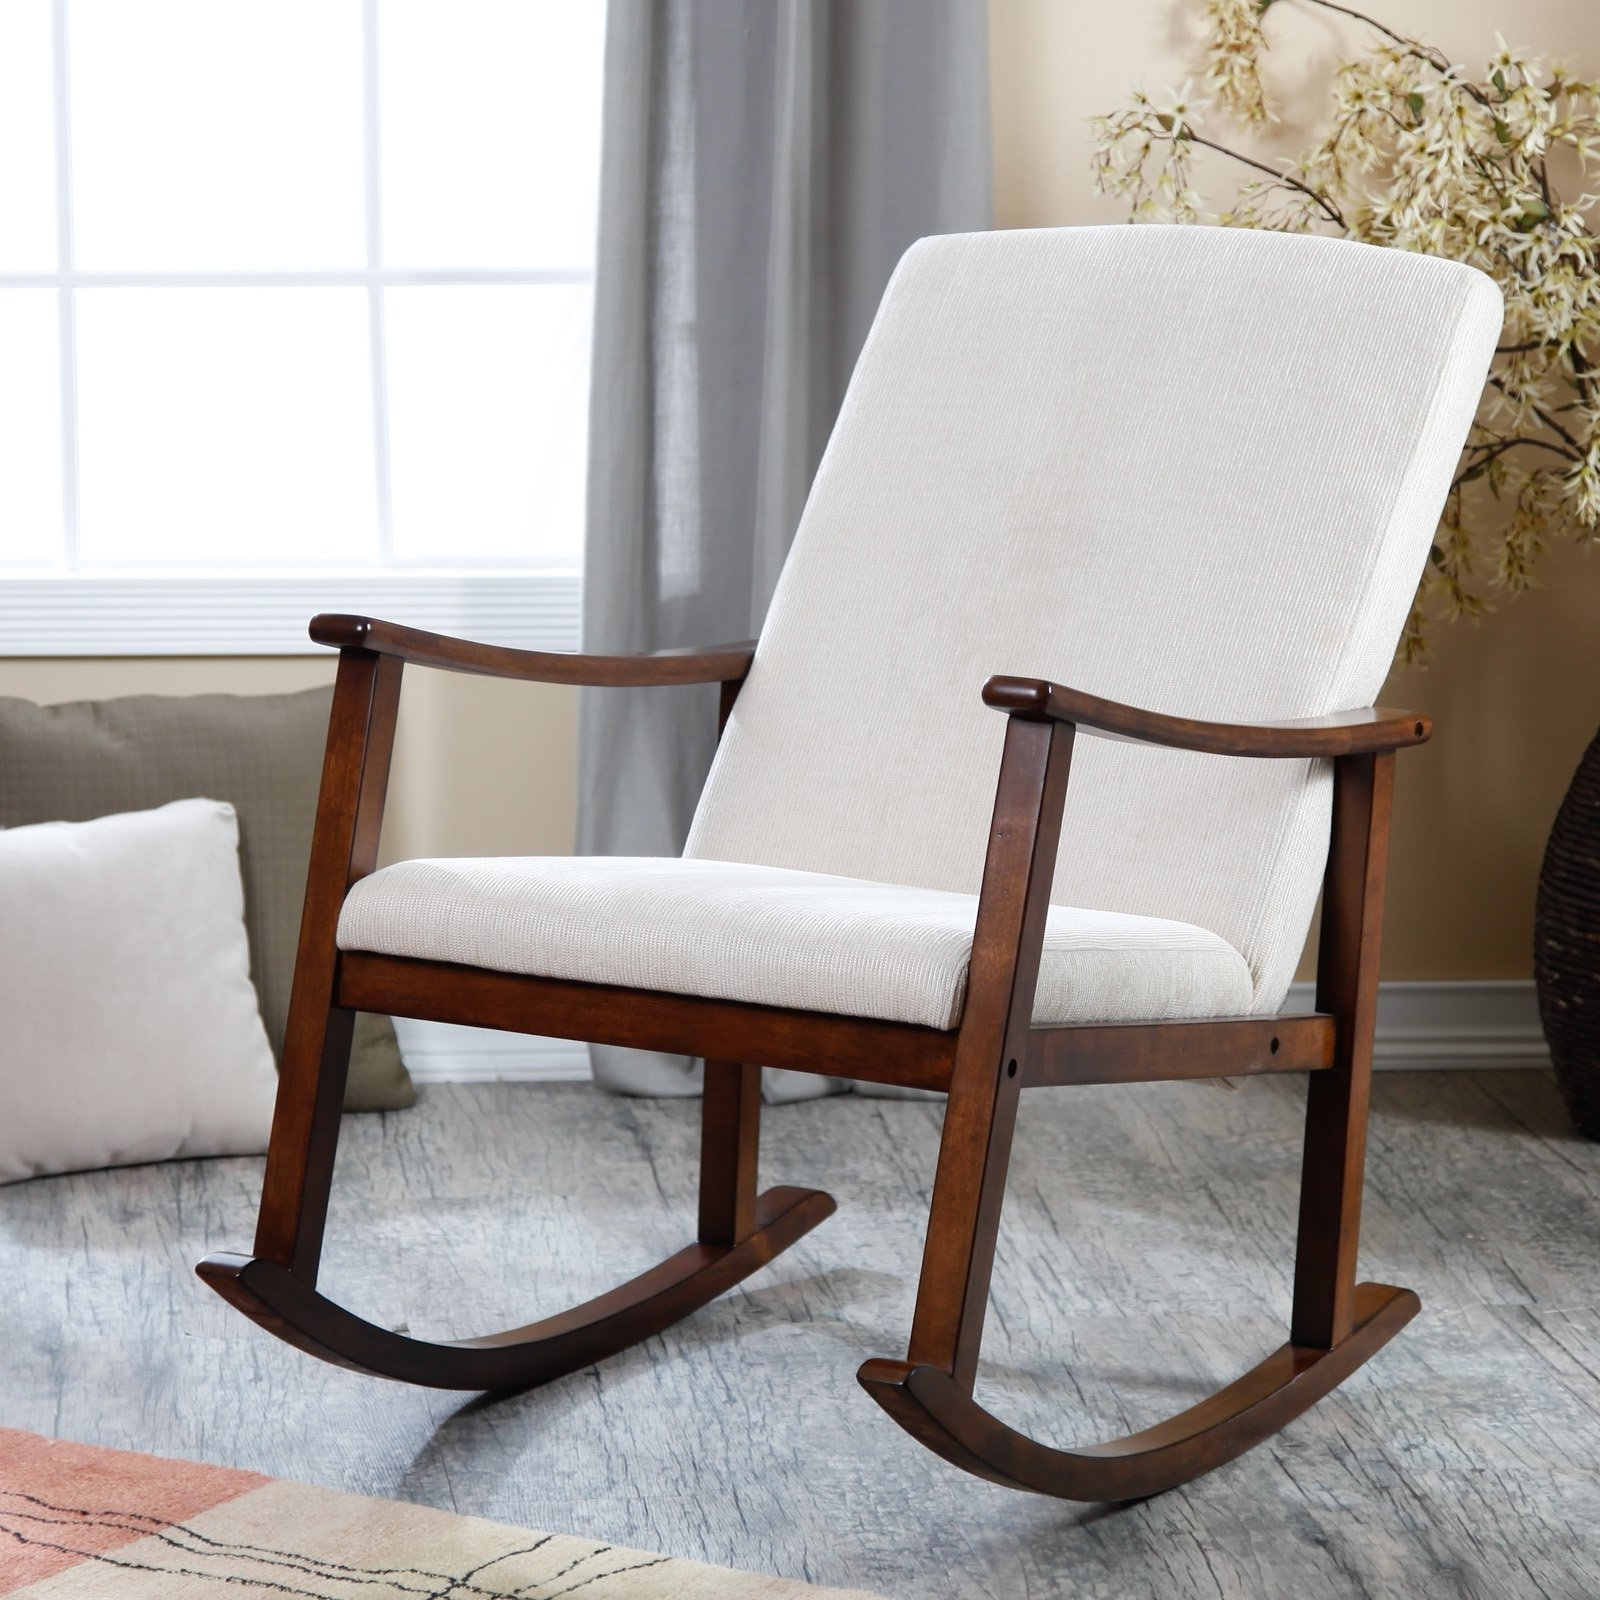 Living Room Furniture : Rocking Chairs For Baby Nursery Wooden Inside Trendy Rocking Chairs For Nursing (View 6 of 20)